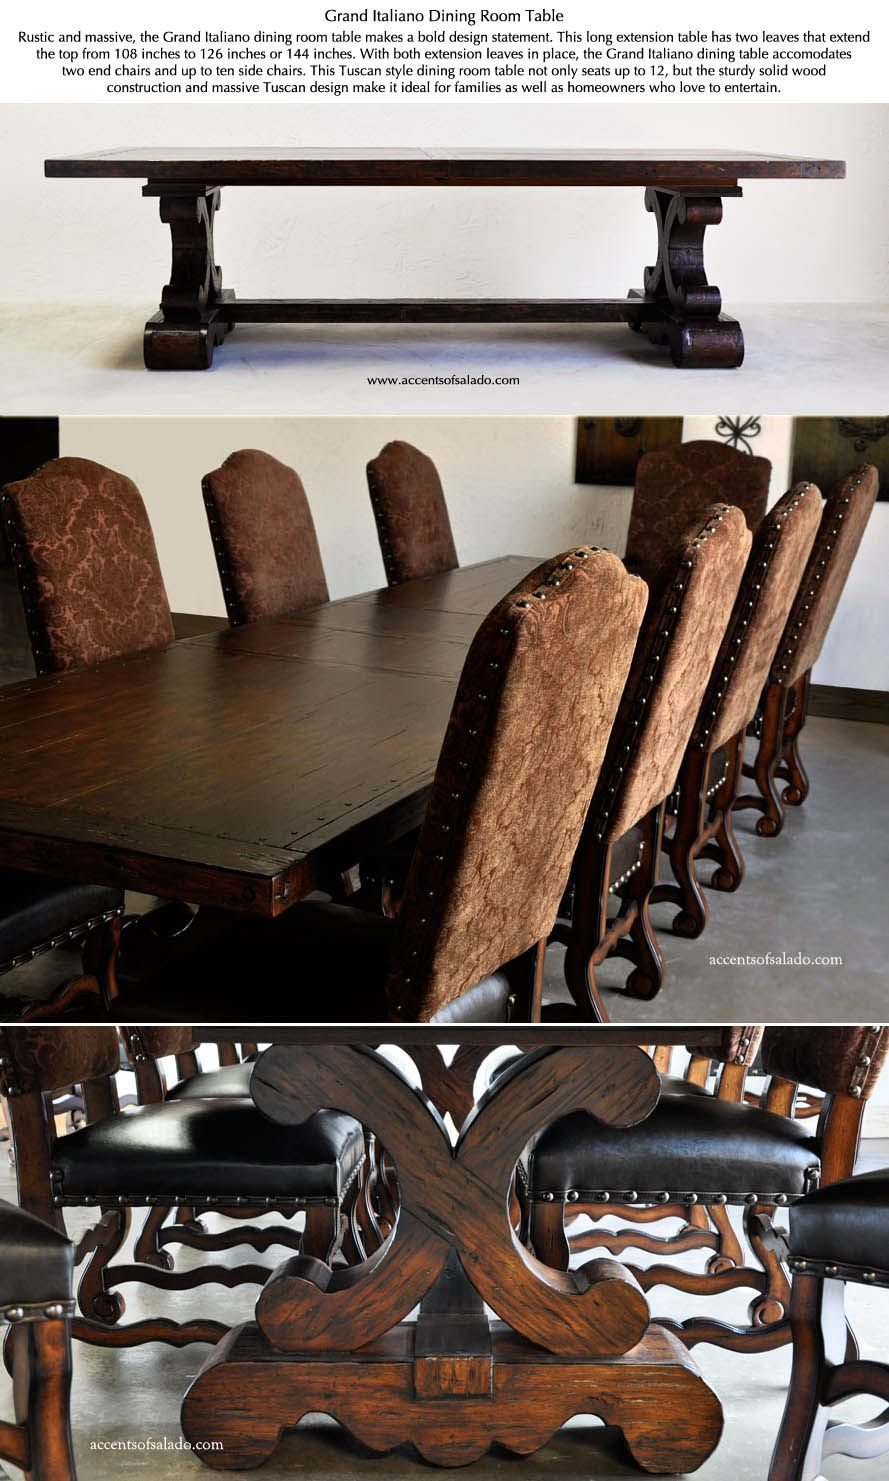 THE PERFECT HOLIDAY TABLE See Tuscan Dining Room Tables At Accents Of  Salado Furniture Store.